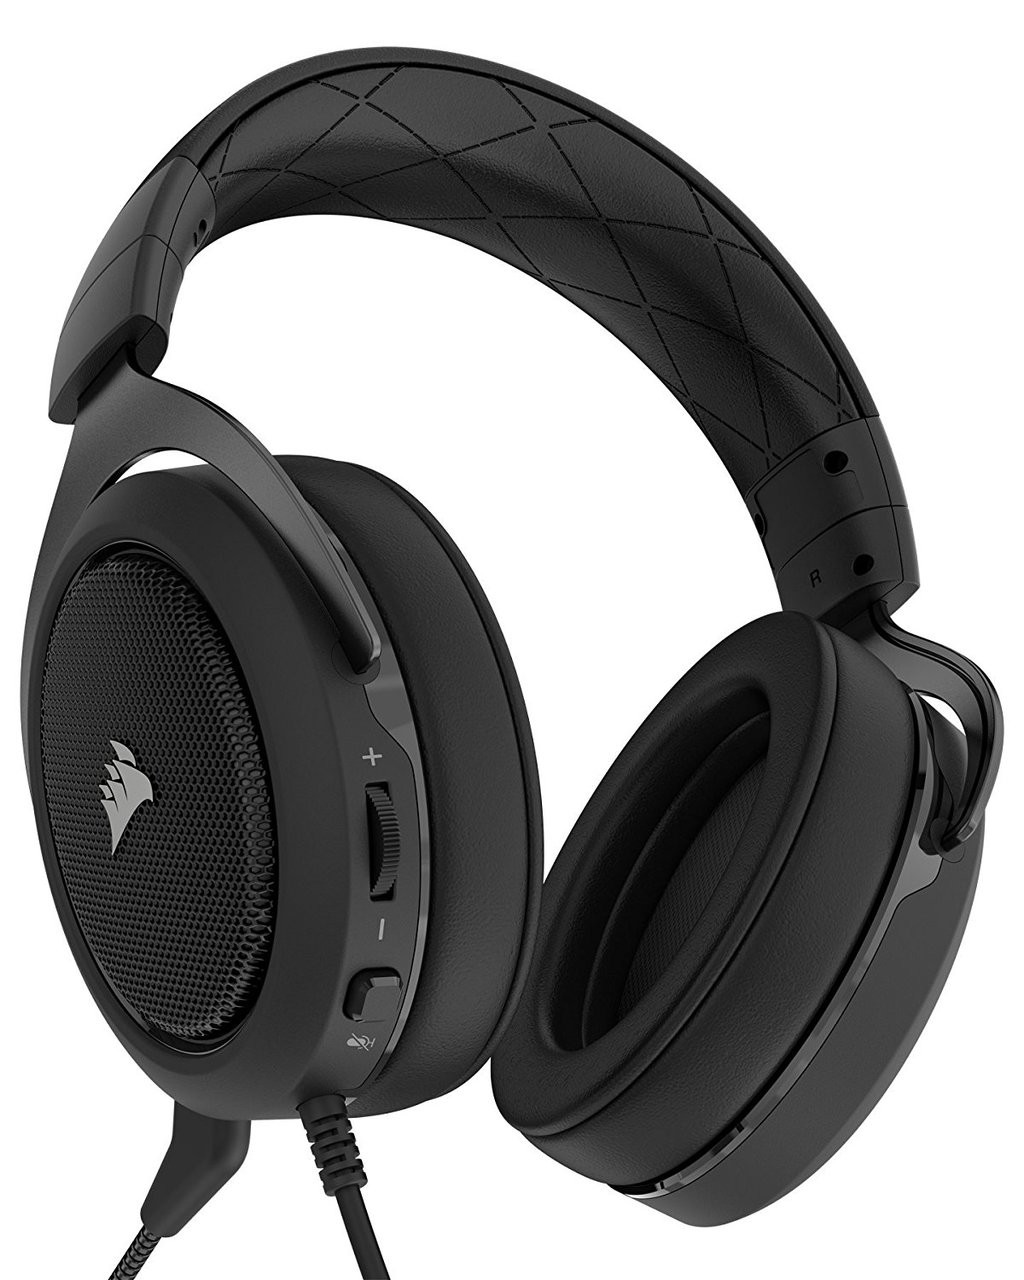 0beae8c919c CORSAIR HS50 - Stereo Gaming Headset - Discord Certified Headphones - Works  with PC, Mac